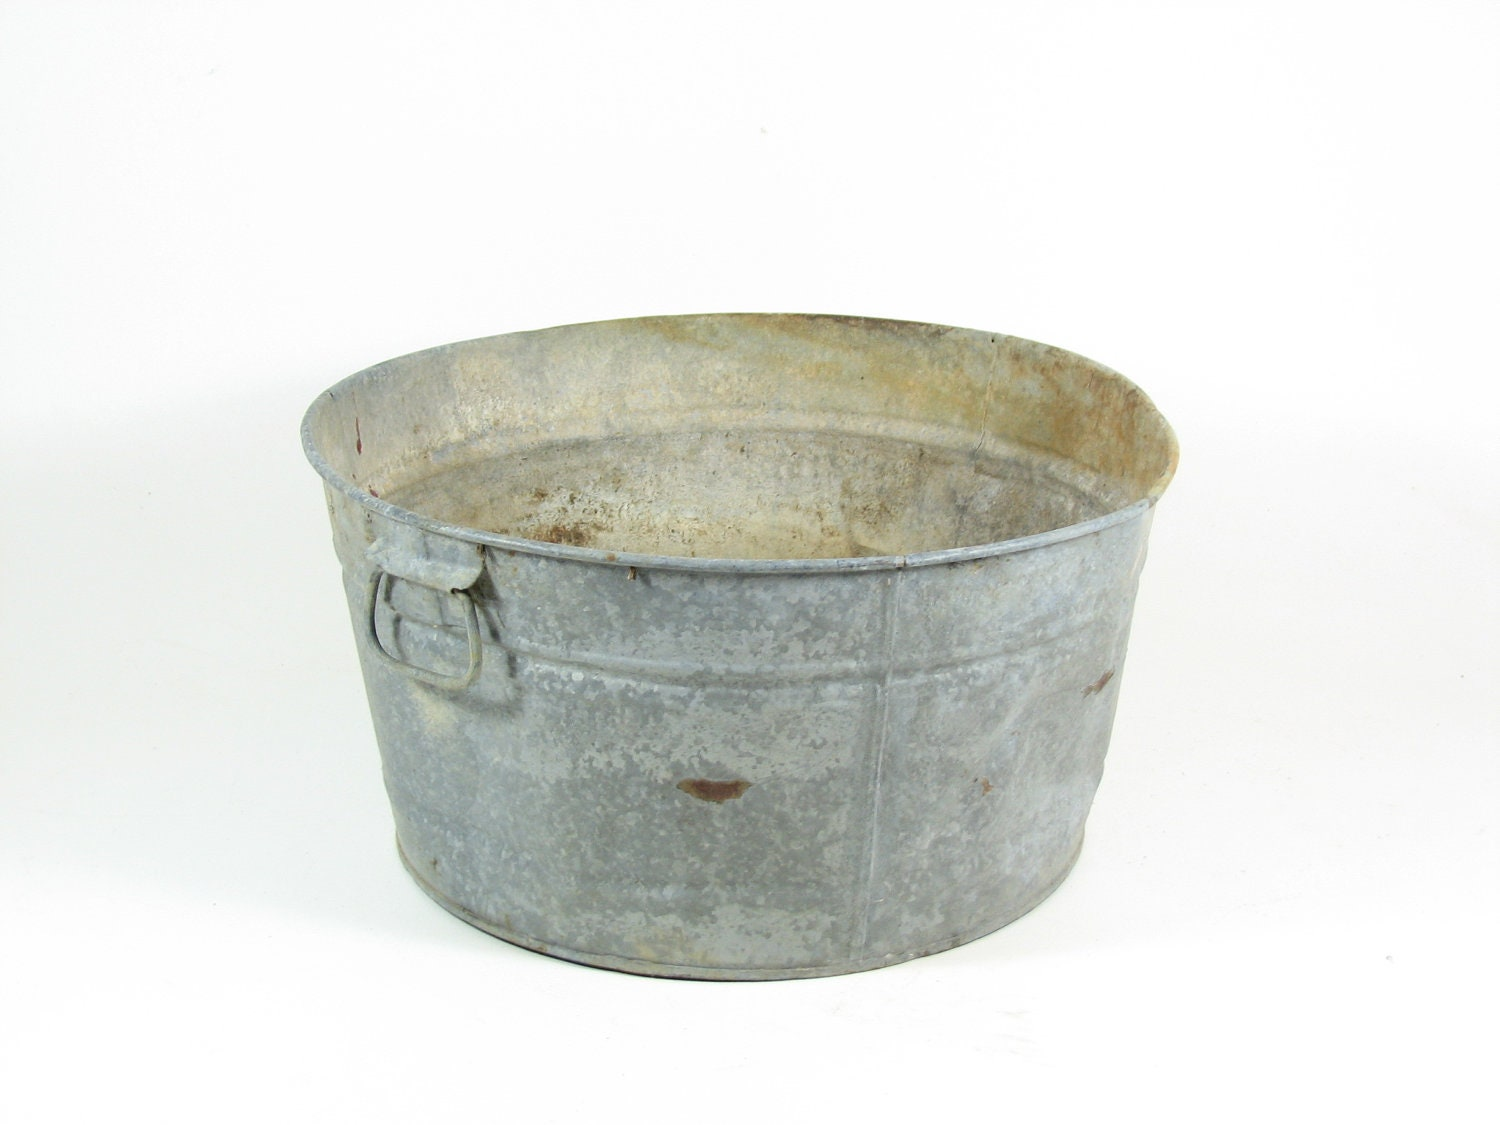 Vintage galvanized metal tub wash basin outdoor by for Large metal wash tub